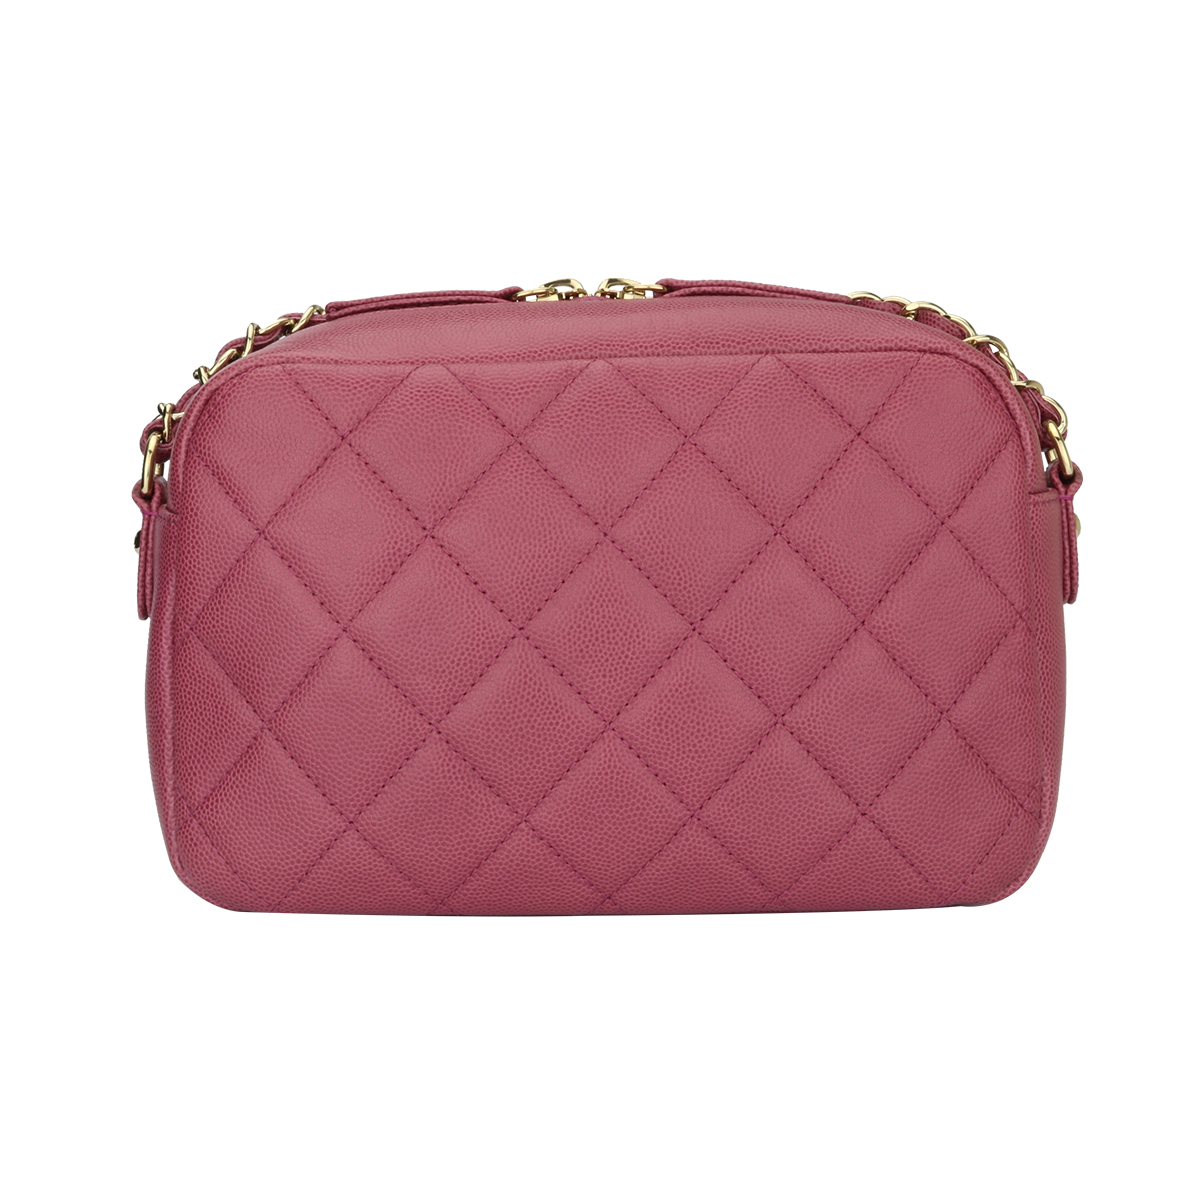 3d84f55fcb62 CHANEL Business Affinity Camera Case Pink Caviar Gold Hardware 2016 -  BoutiQi Bags